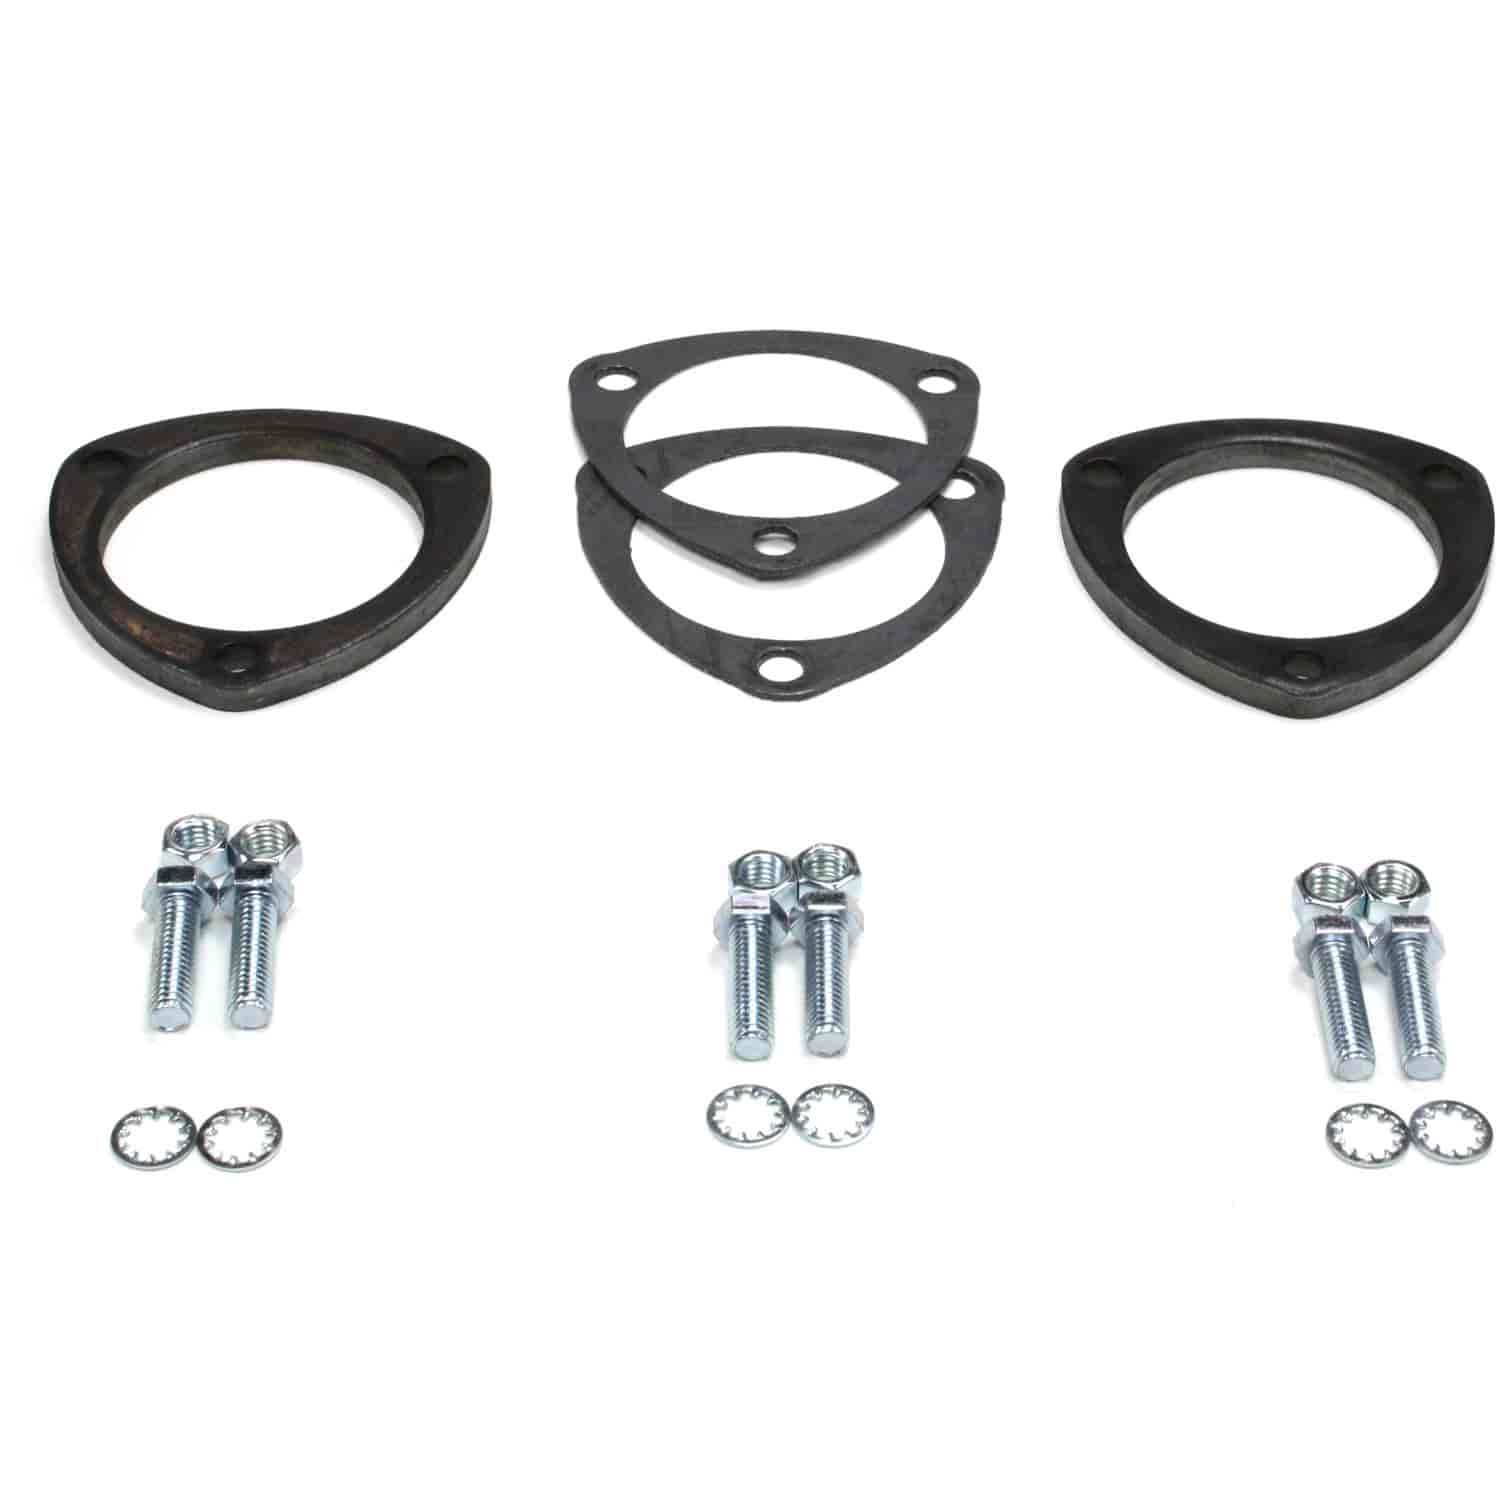 Patriot Exhaust H7268 - Patriot Exhaust Collector Flange Kits